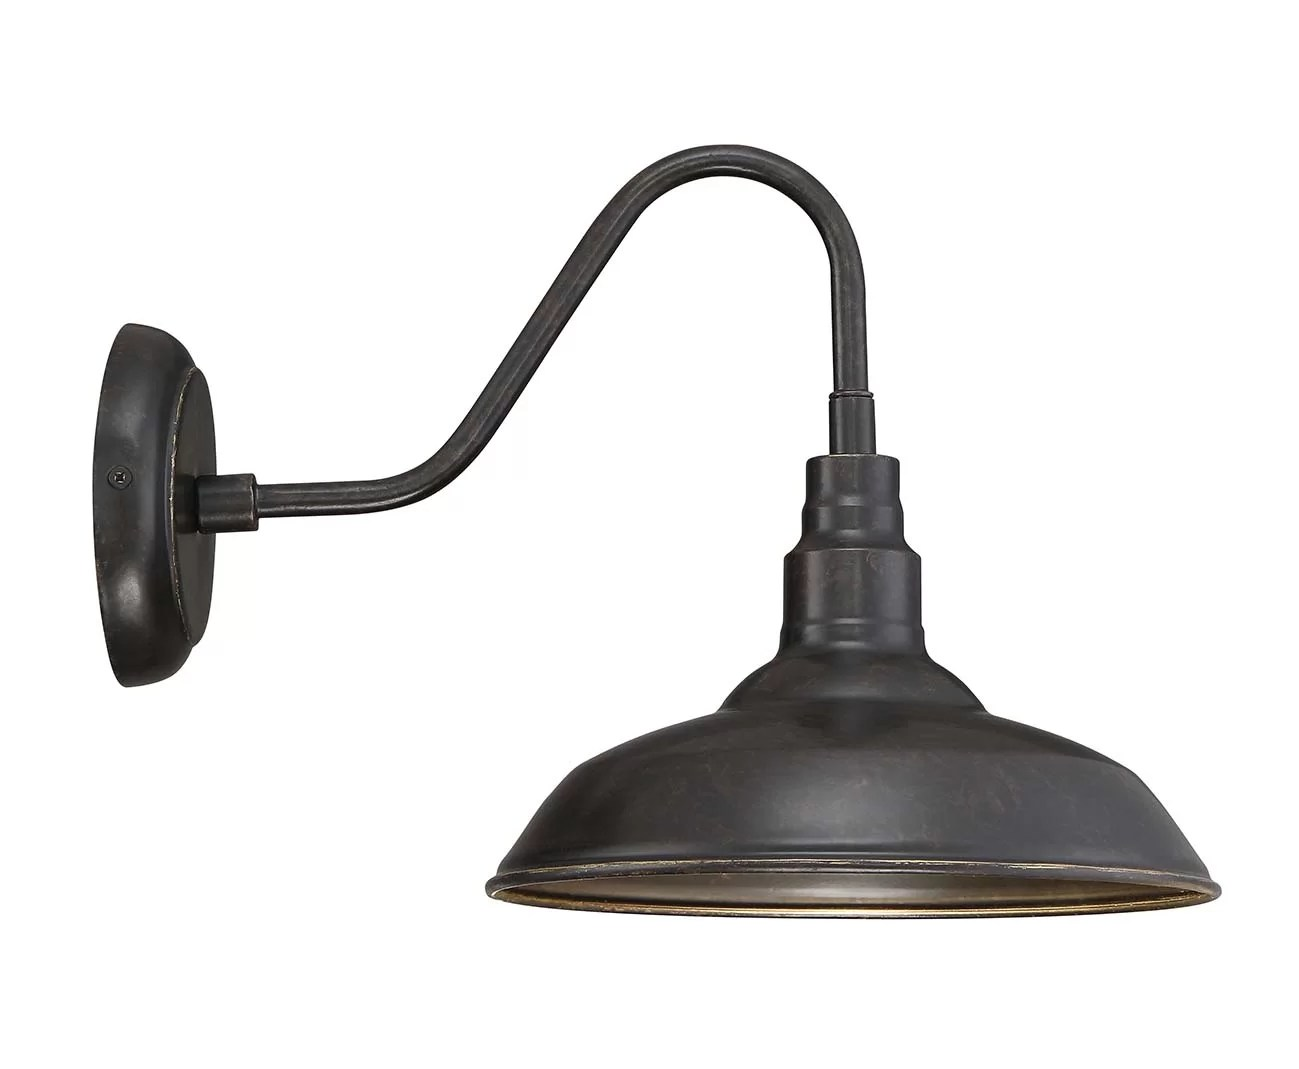 Y Decor Lora 1 Light Outdoor Barn Light